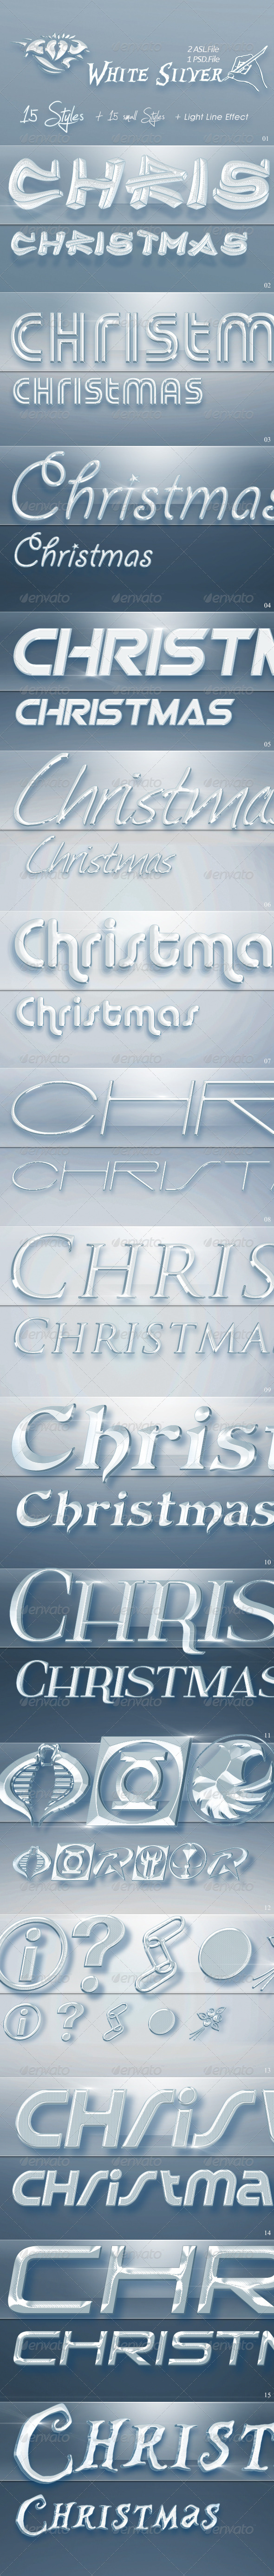 GraphicRiver 15 White Silver Text Styles for Photoshop Christm 6387295